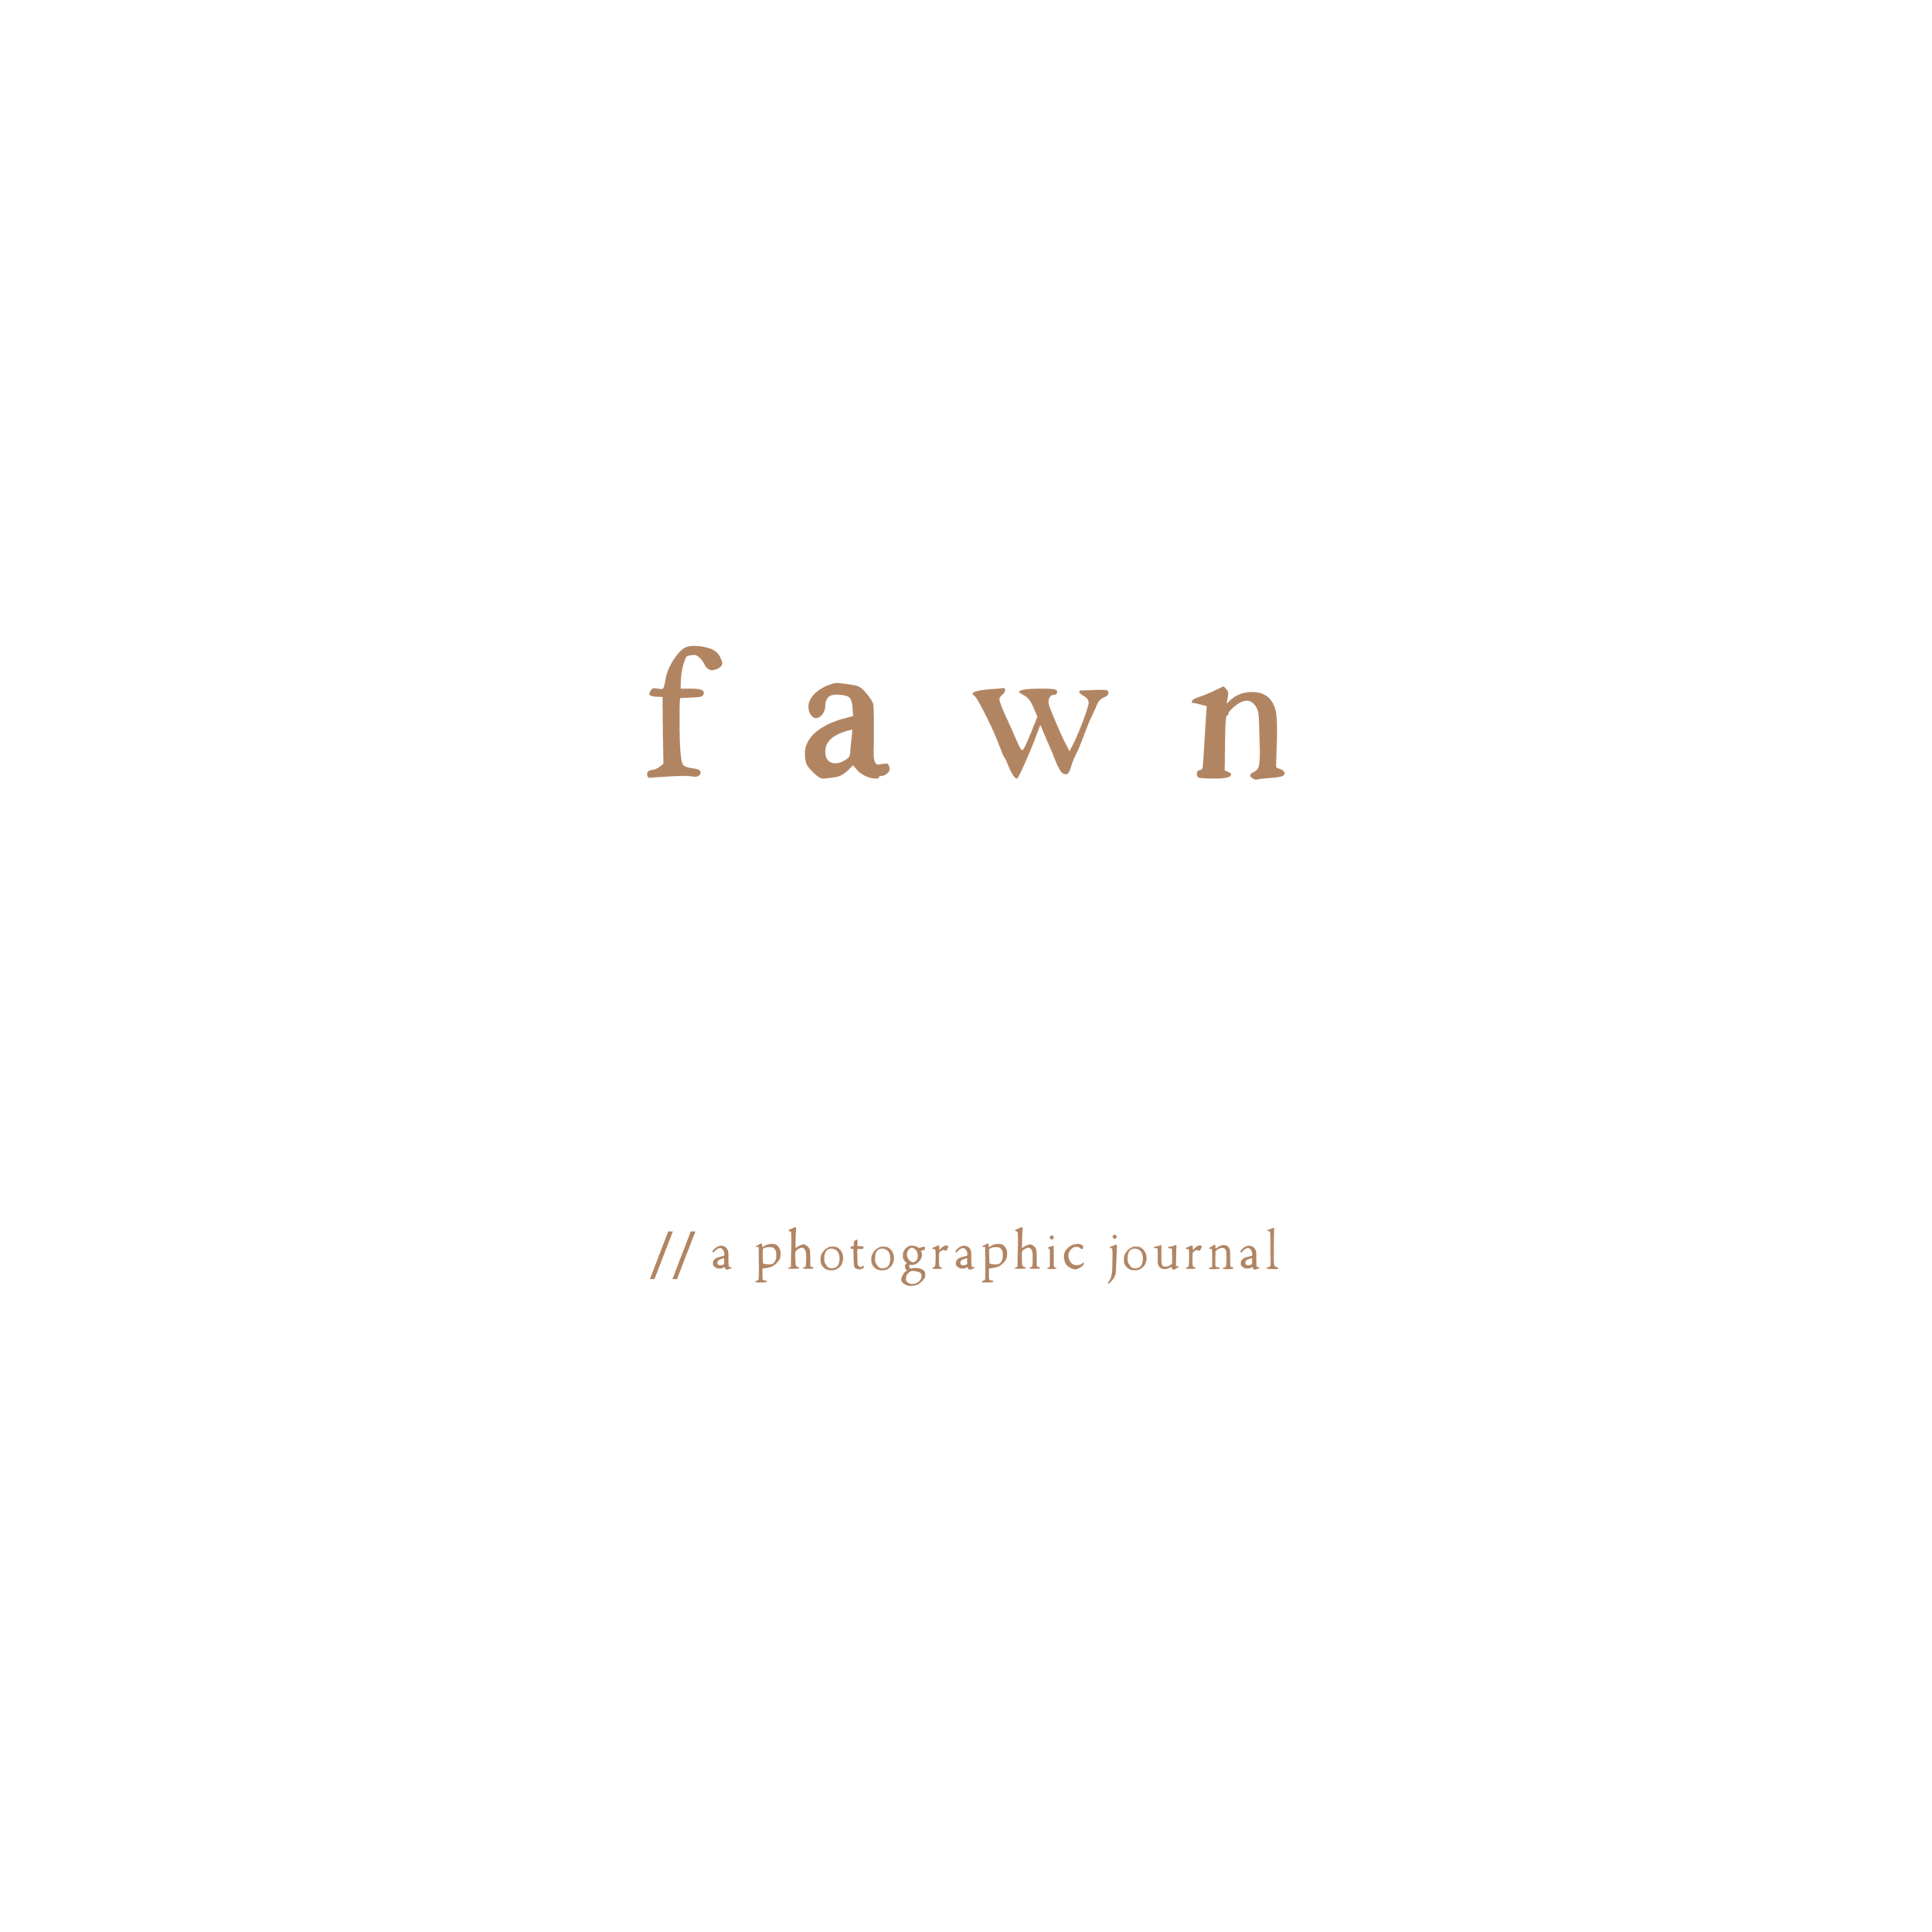 FAWN-01.png